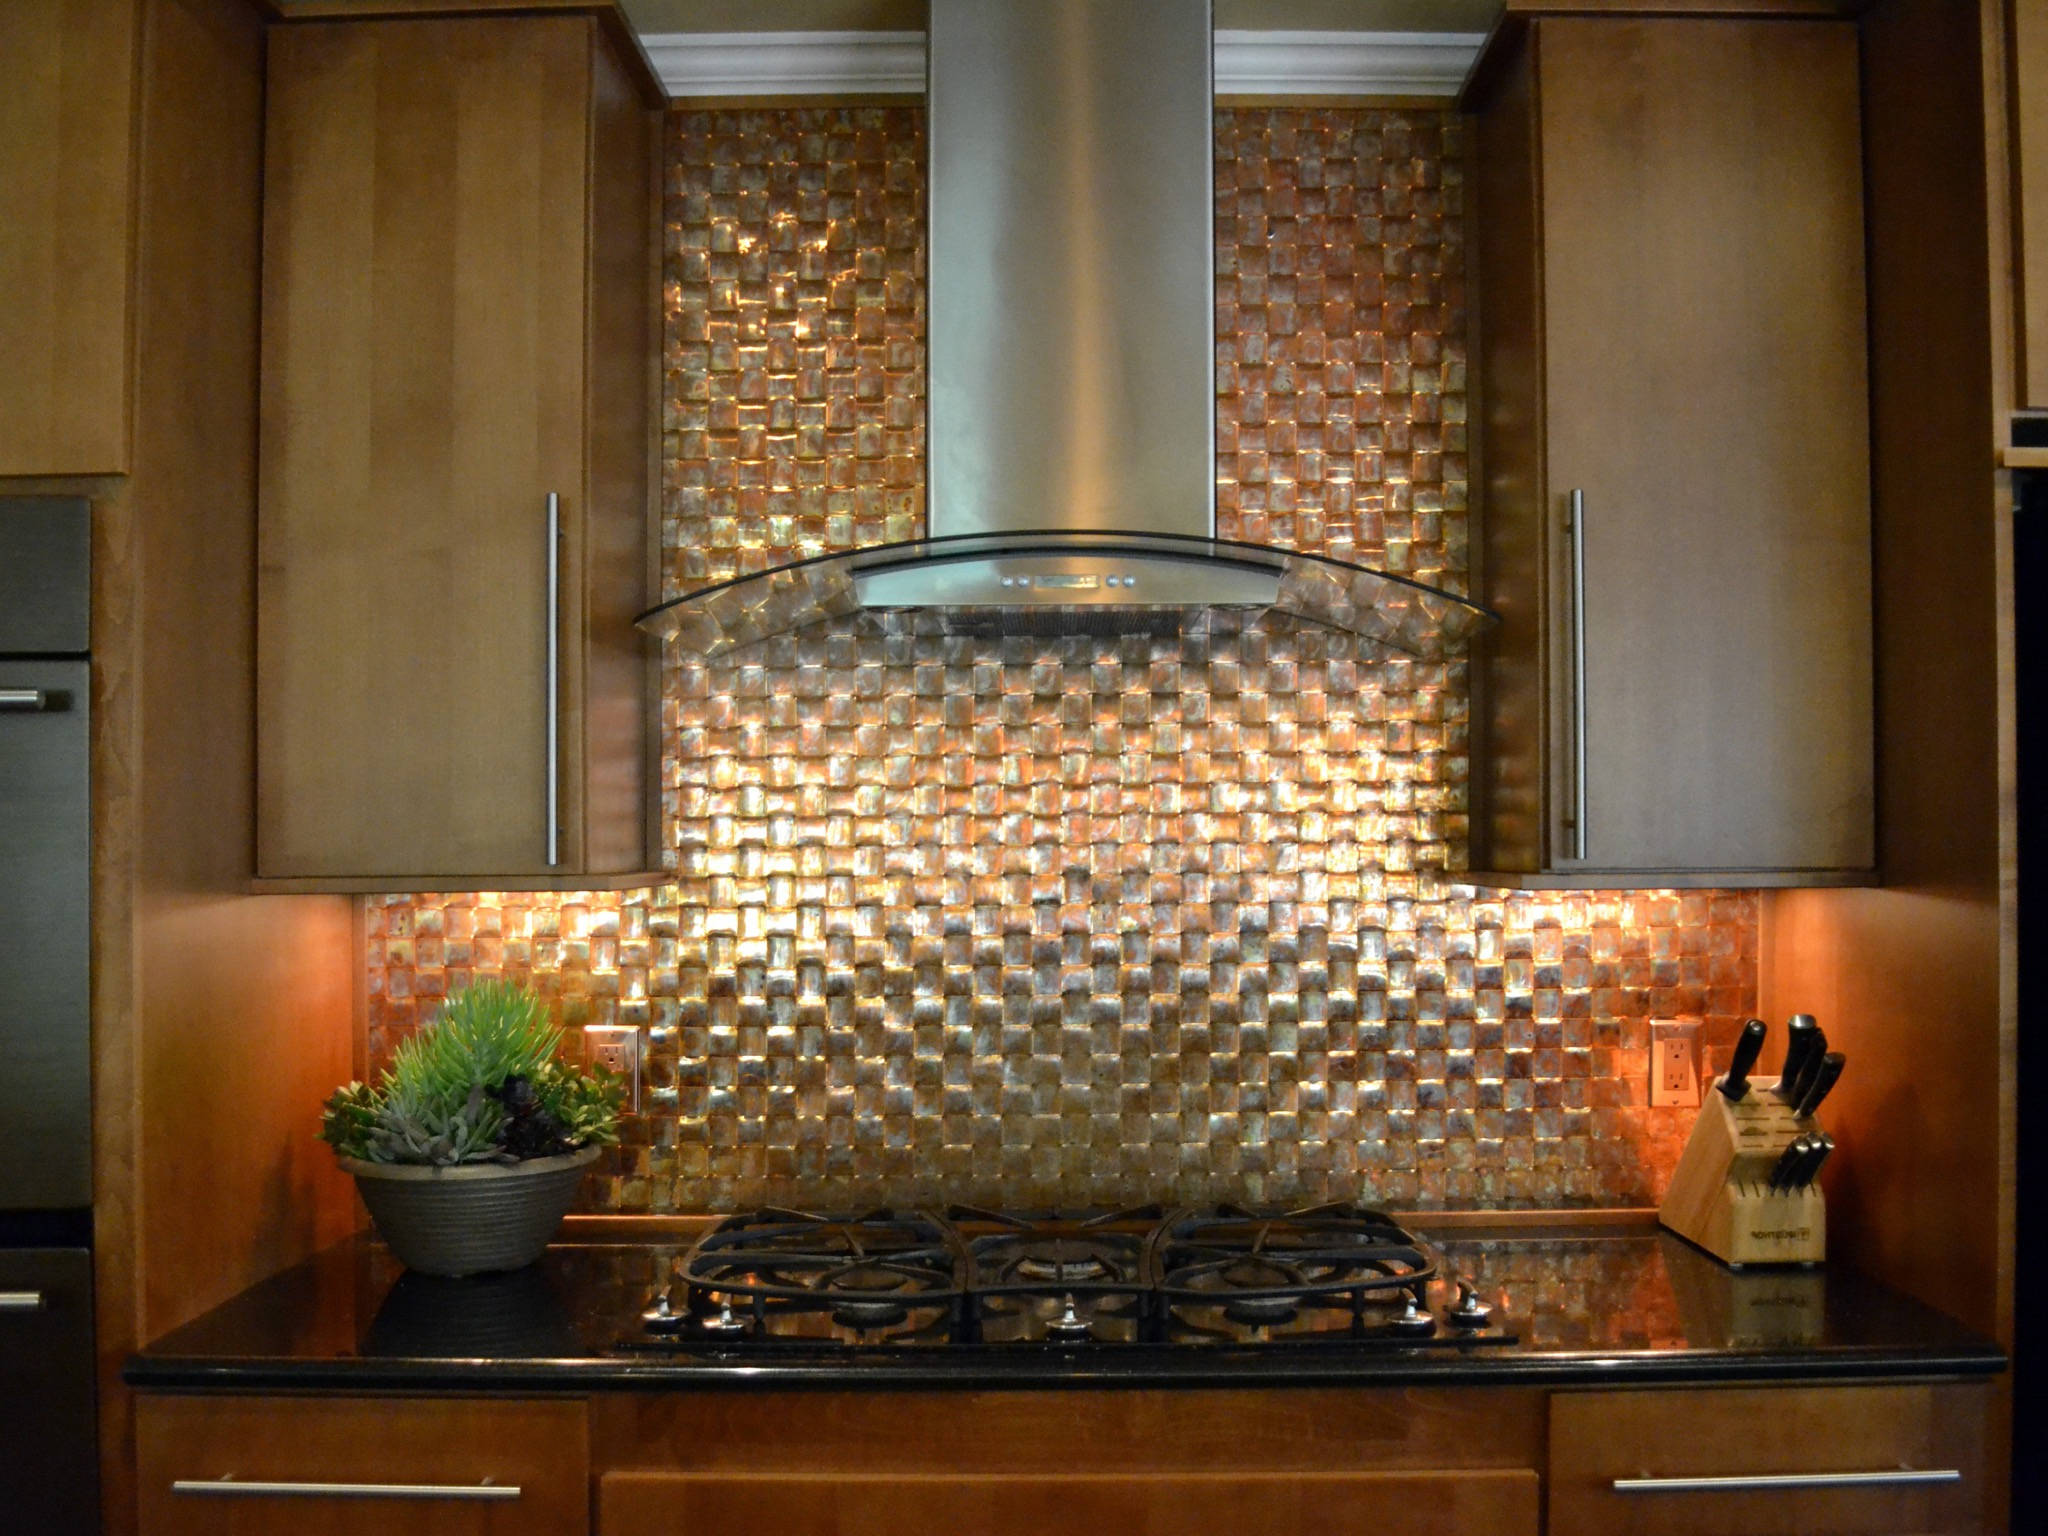 Kitchen With Basket Weave Copper Backsplash (Image 19 of 32)